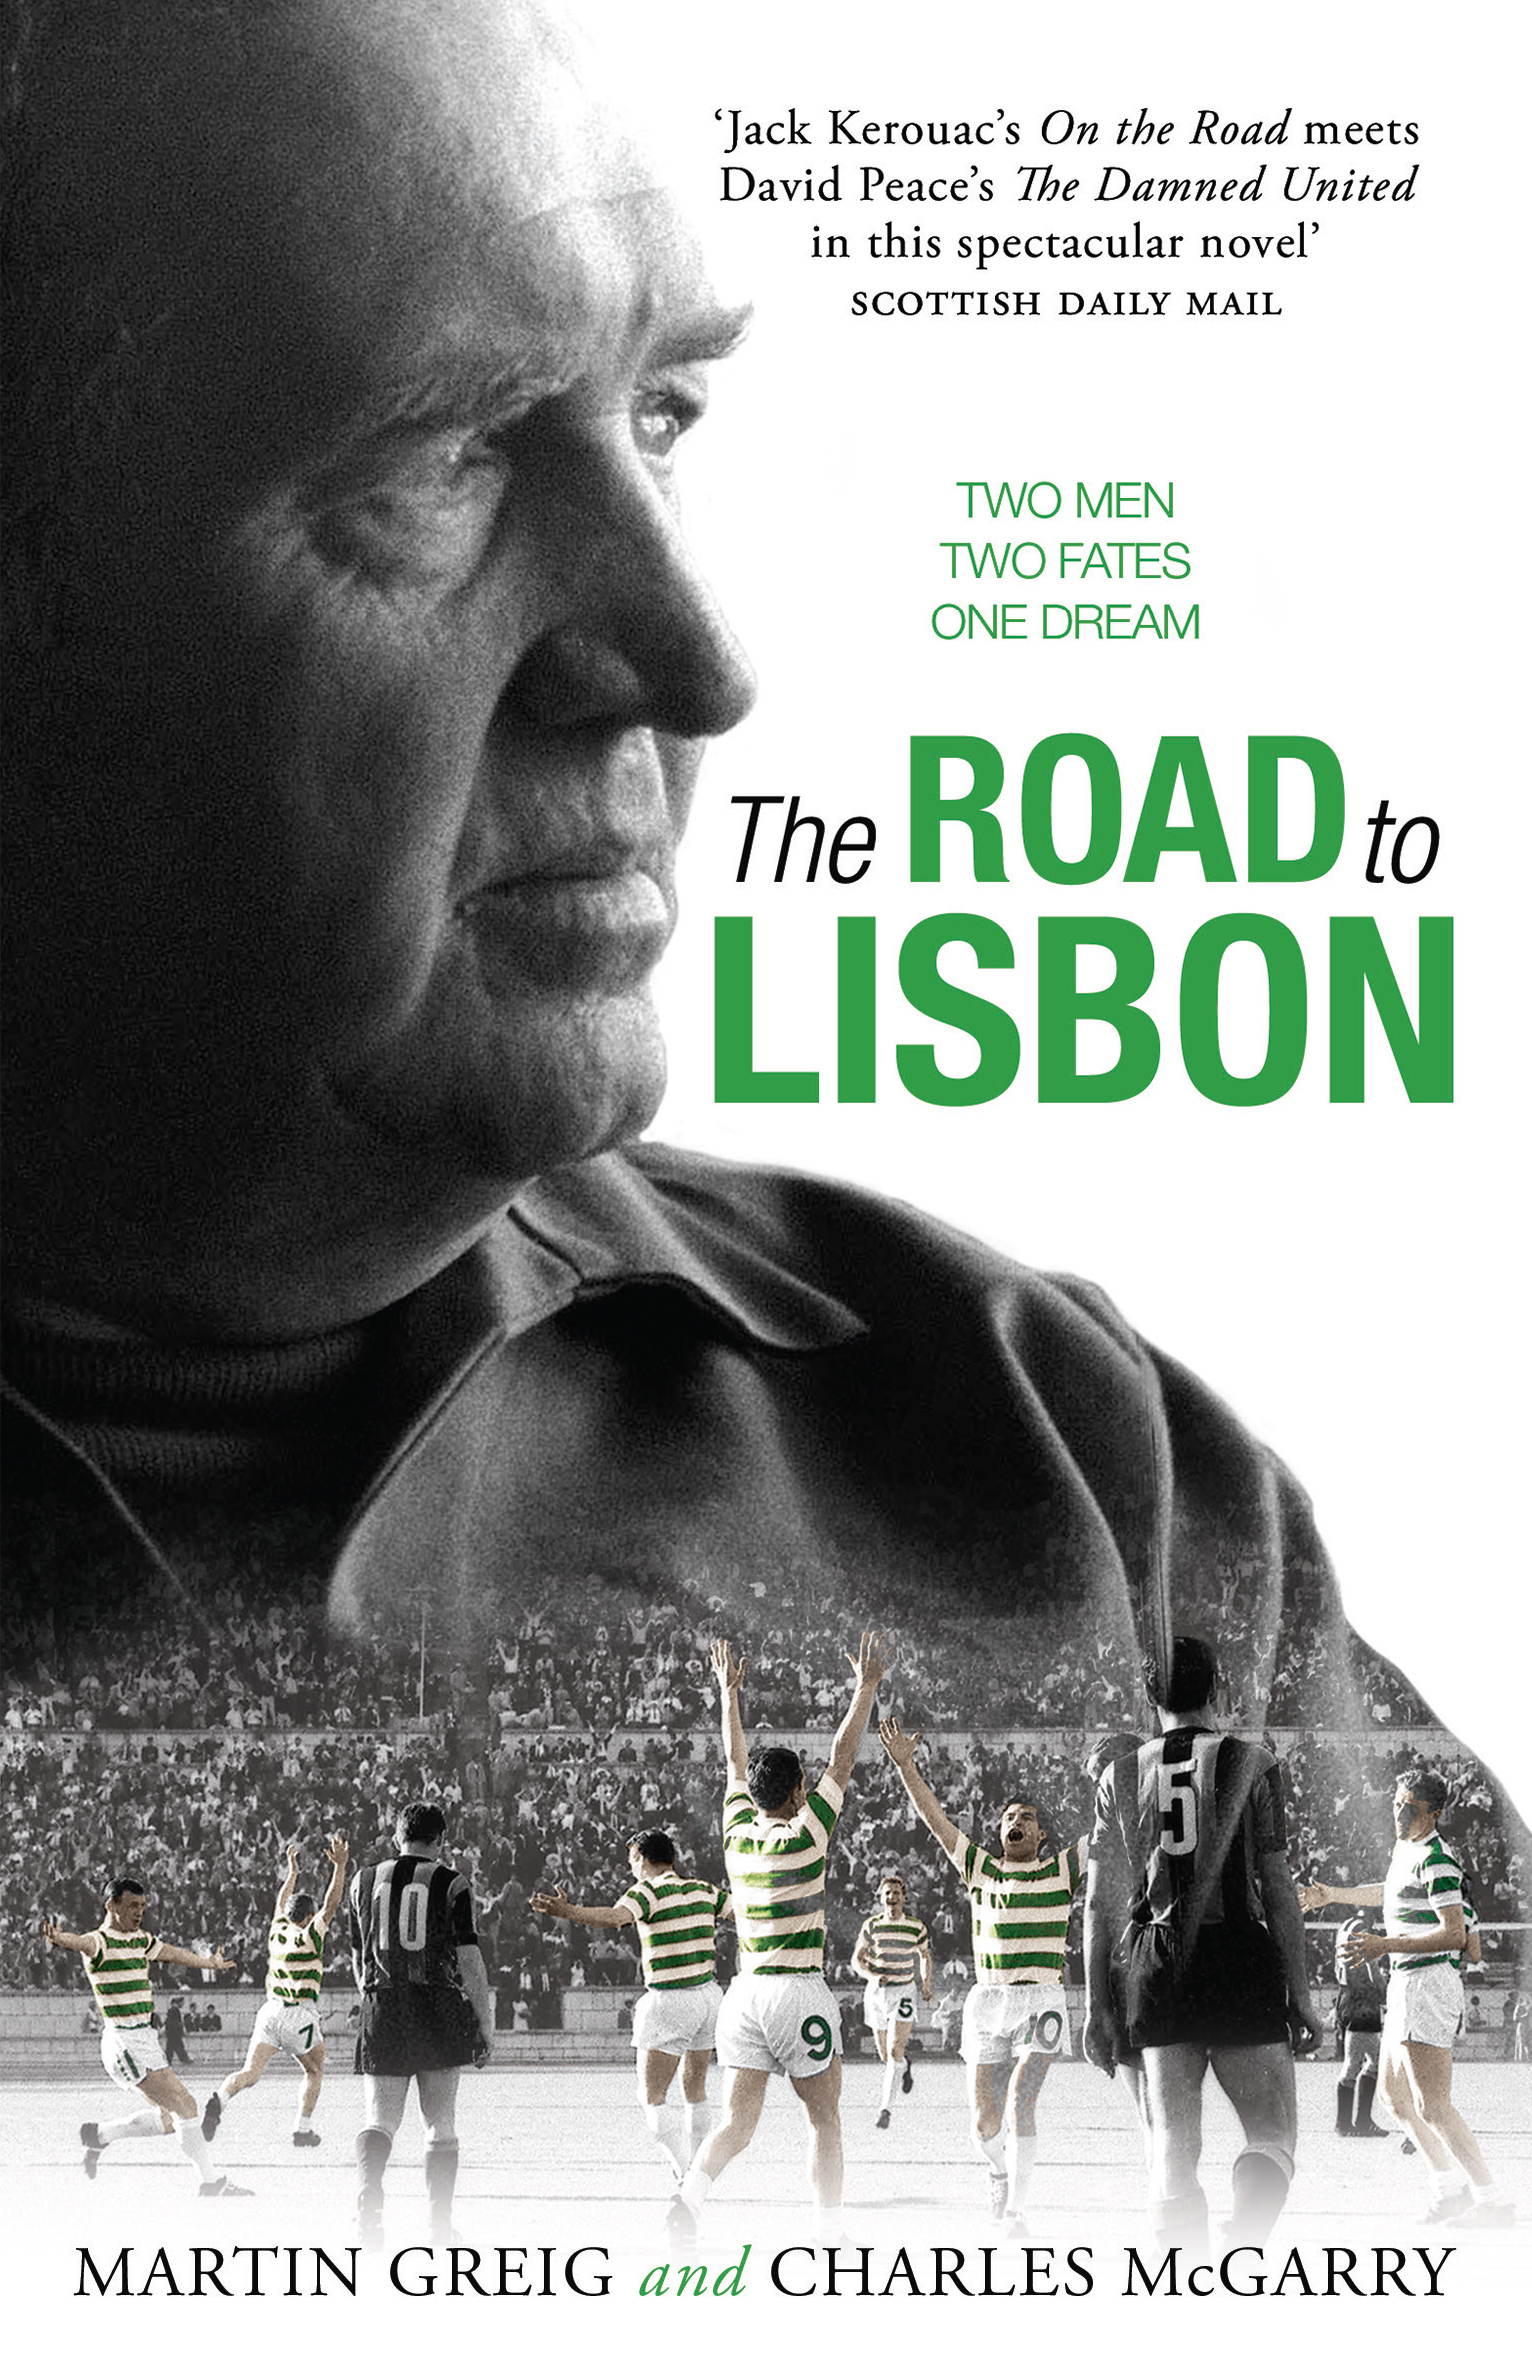 The Road to Lisbon